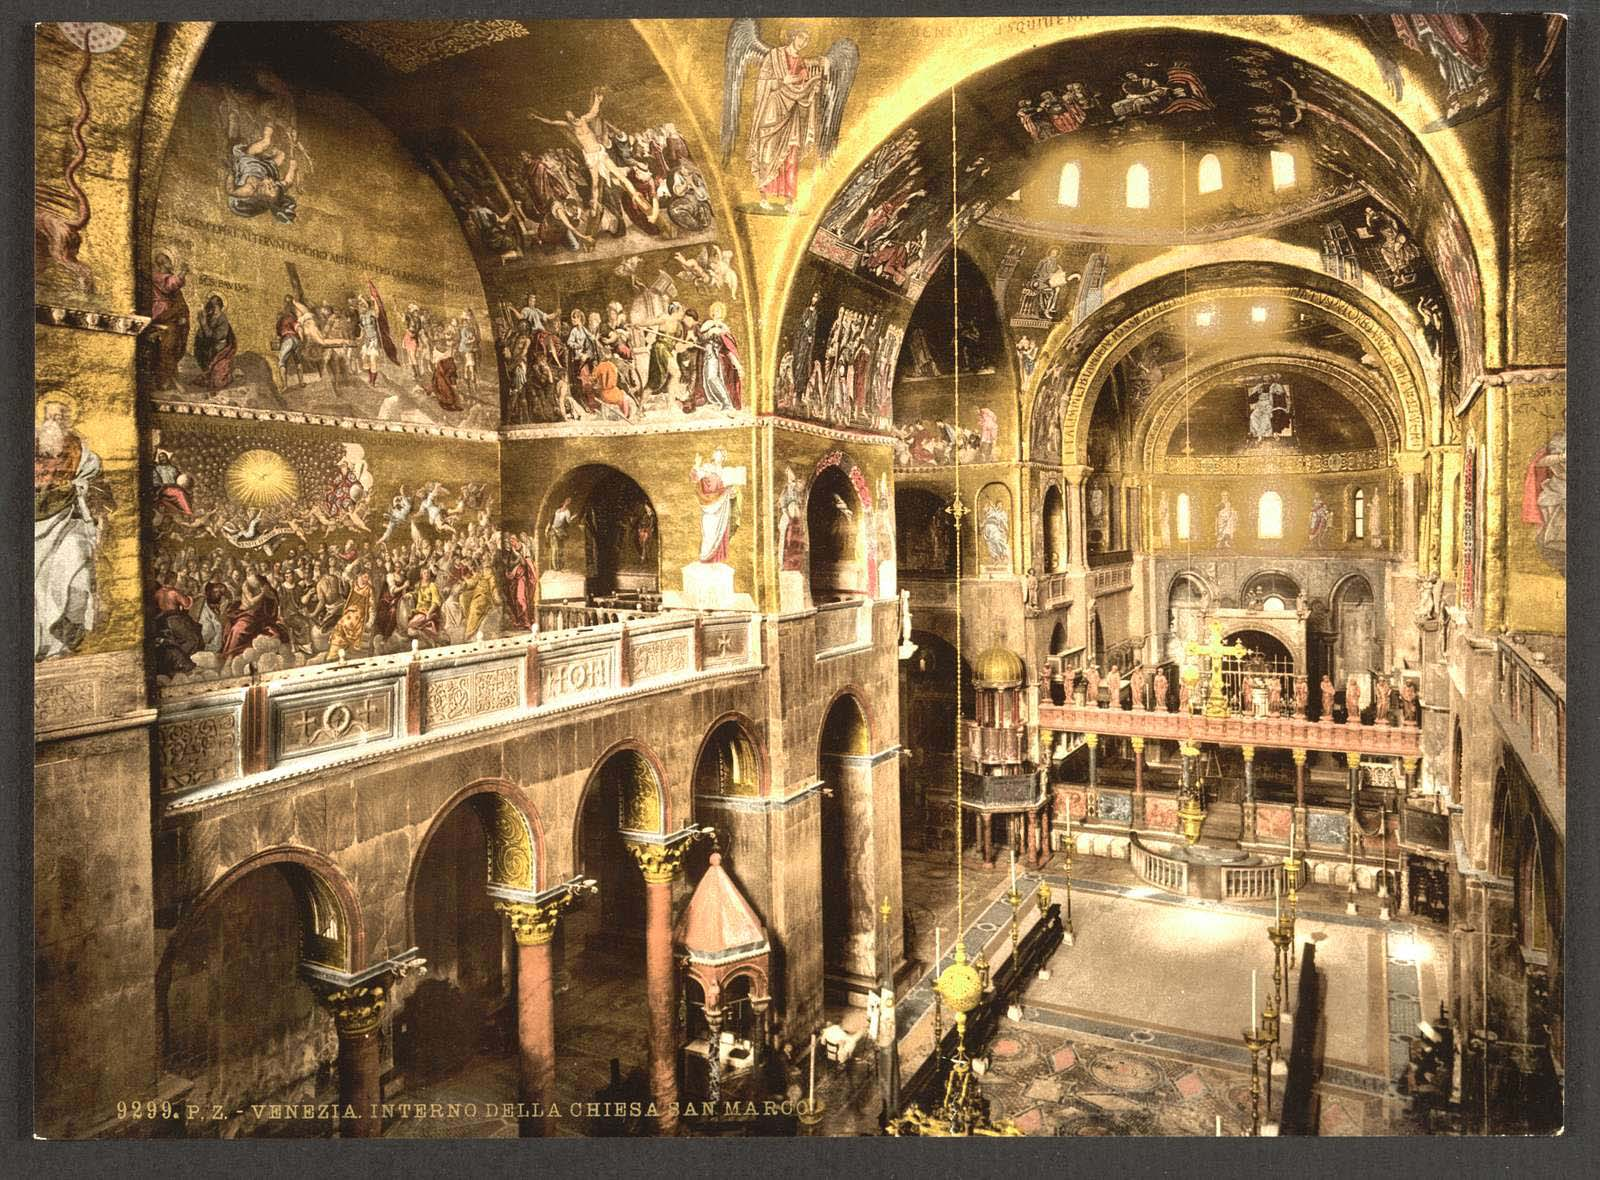 Internal view from San Marco.